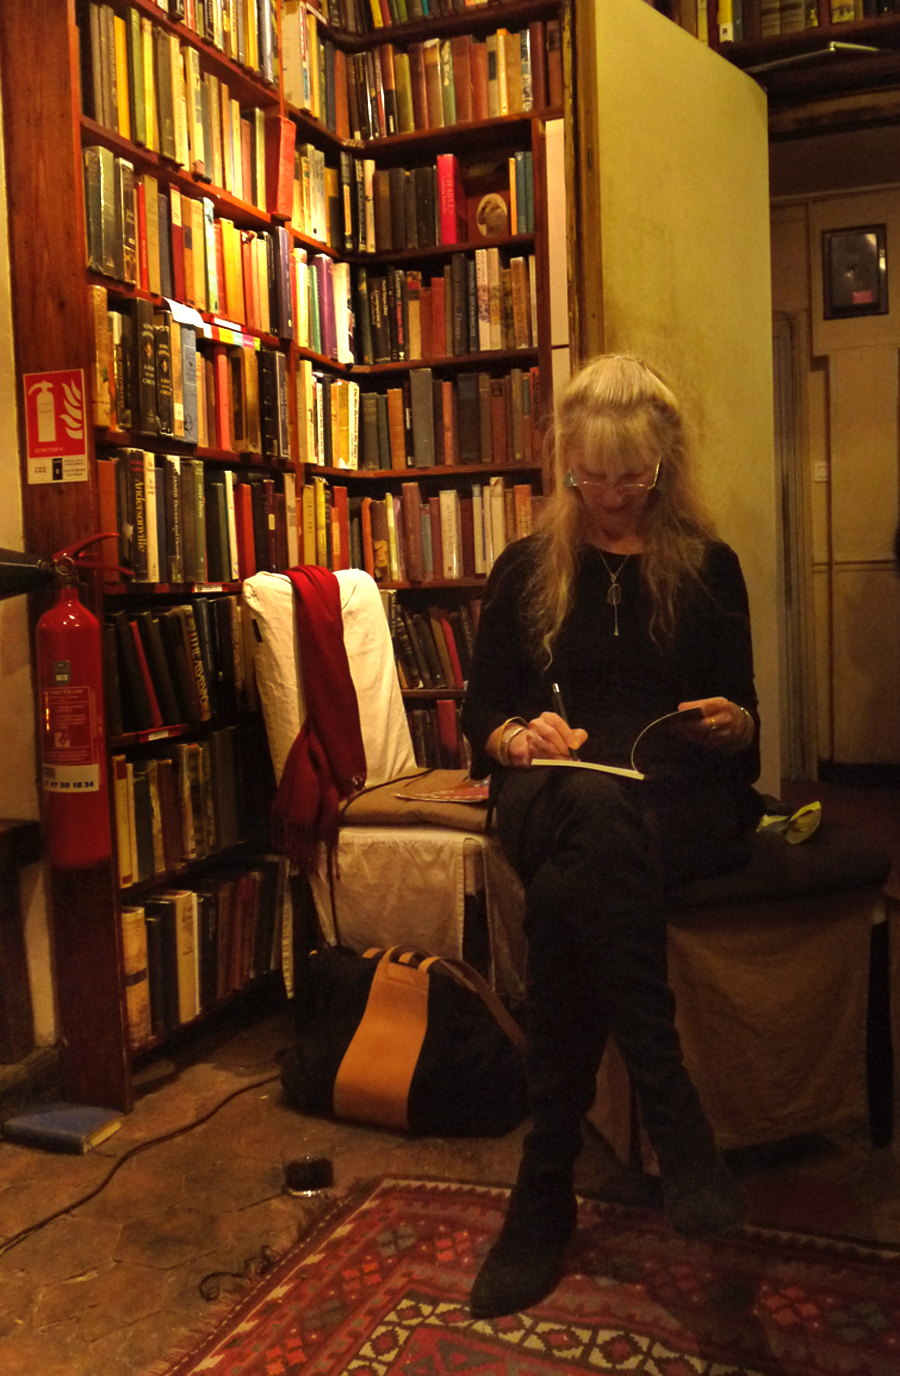 The upstairs room at Shakespeare and Company where I love to hide away and write.